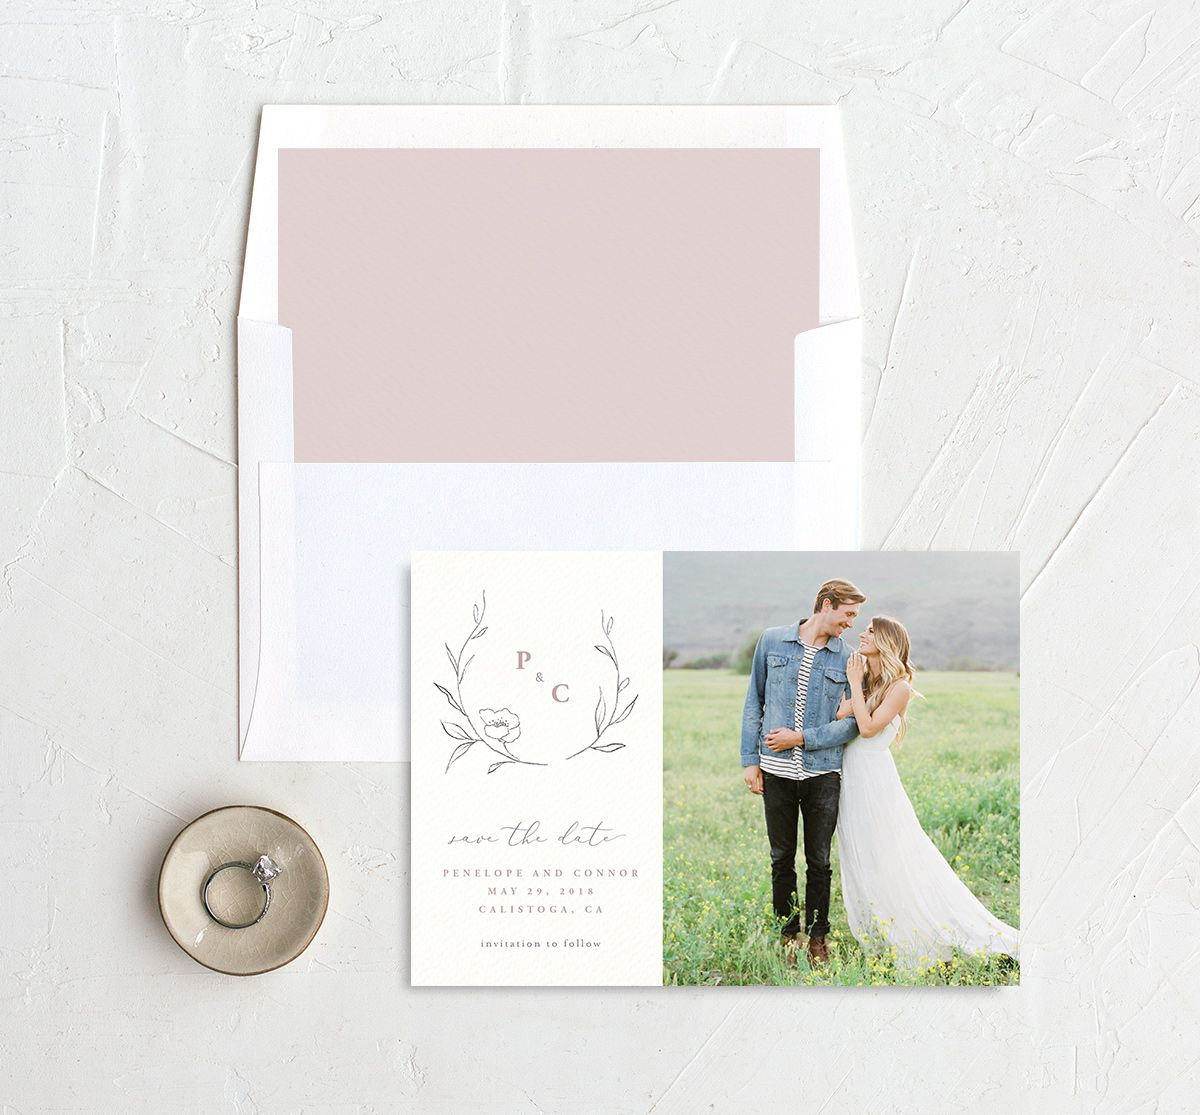 graceful botanical save the date cards in pink with envelope liner